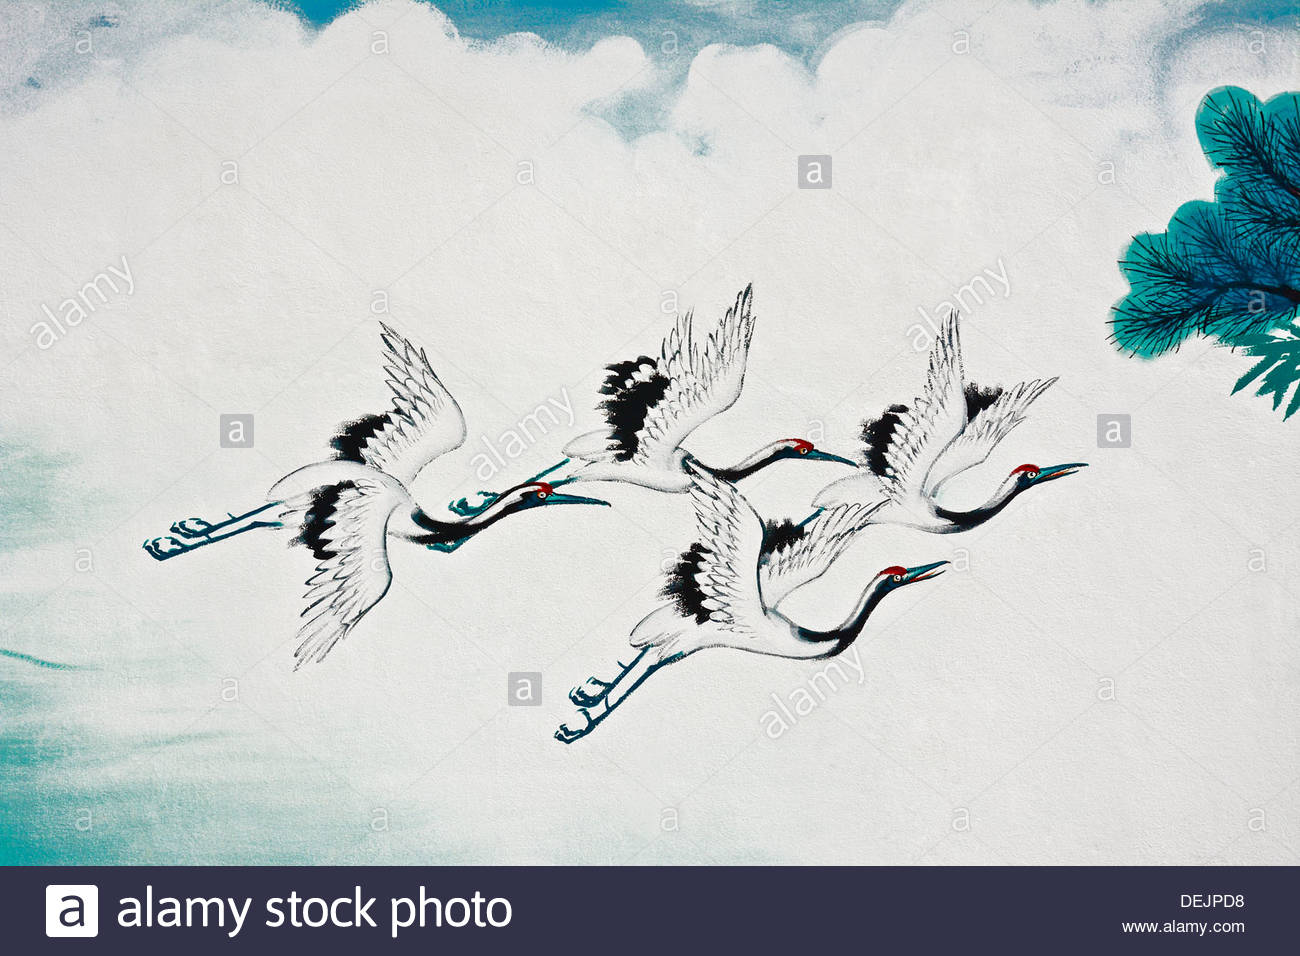 1300x956 Flying Chinese Crane Bird Painting On The Wall Stock Photo